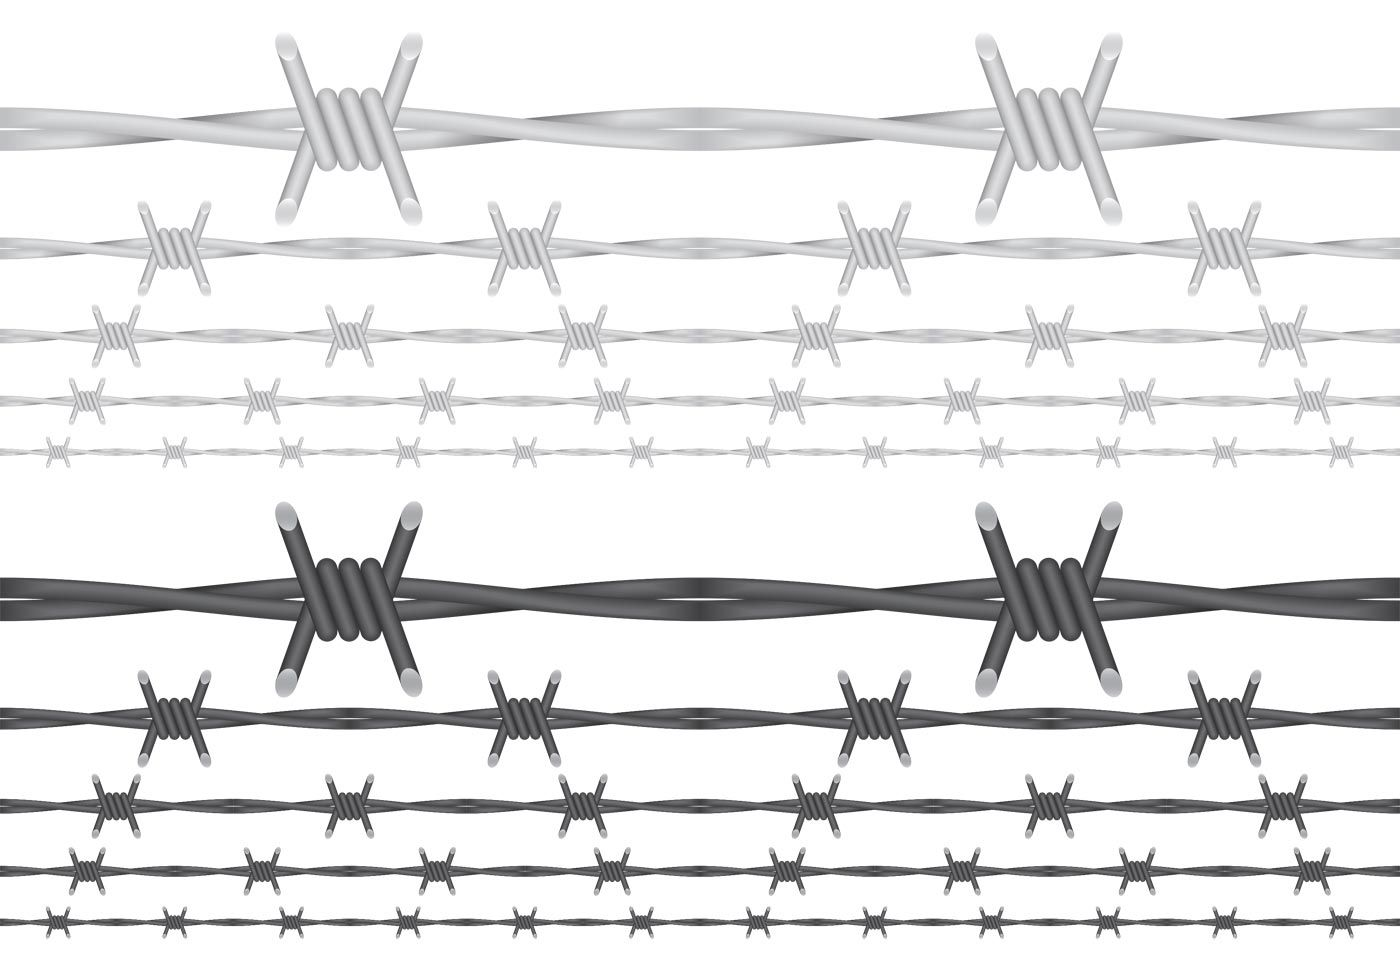 Barbed Wire Vectors | REINSERTA | Pinterest | Silhouettes